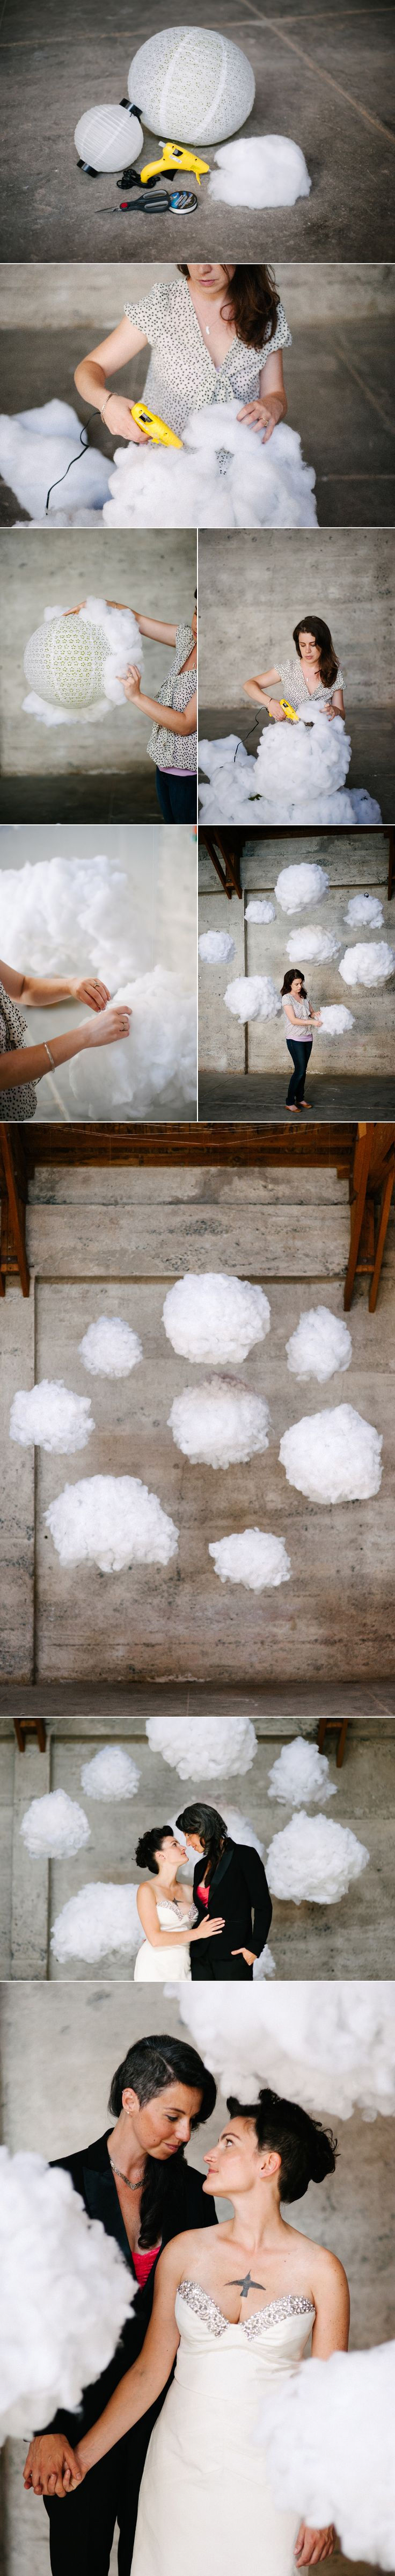 How To: Surreal DIY Cloud Wedding Backdrop | A Practical Wedding